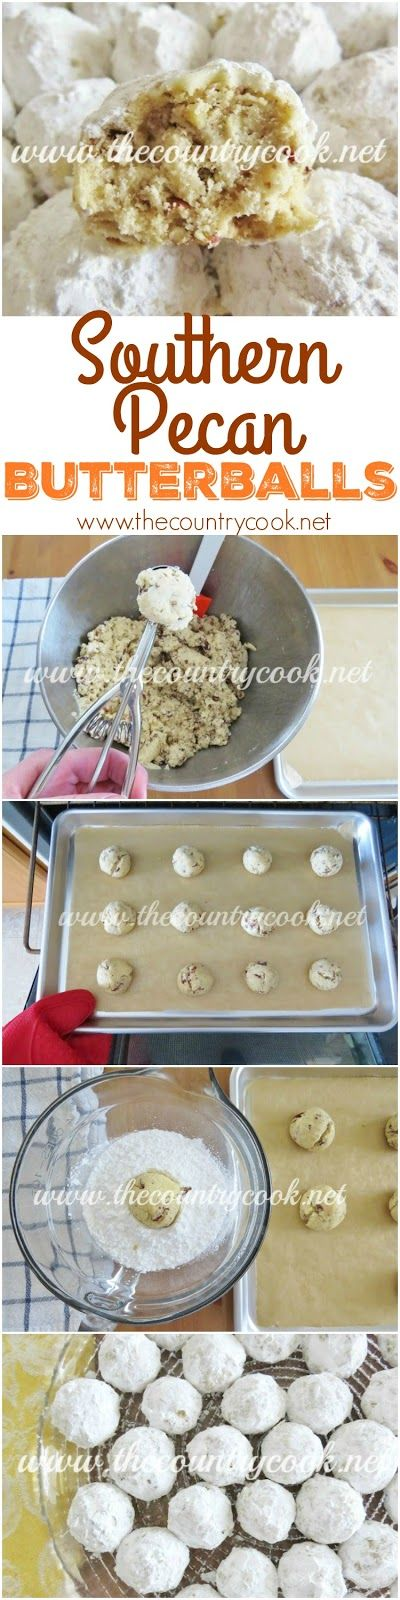 Southern Pecan Butterballs Recipe From The Country Cook Also Known As Mexican Wedding Cookies